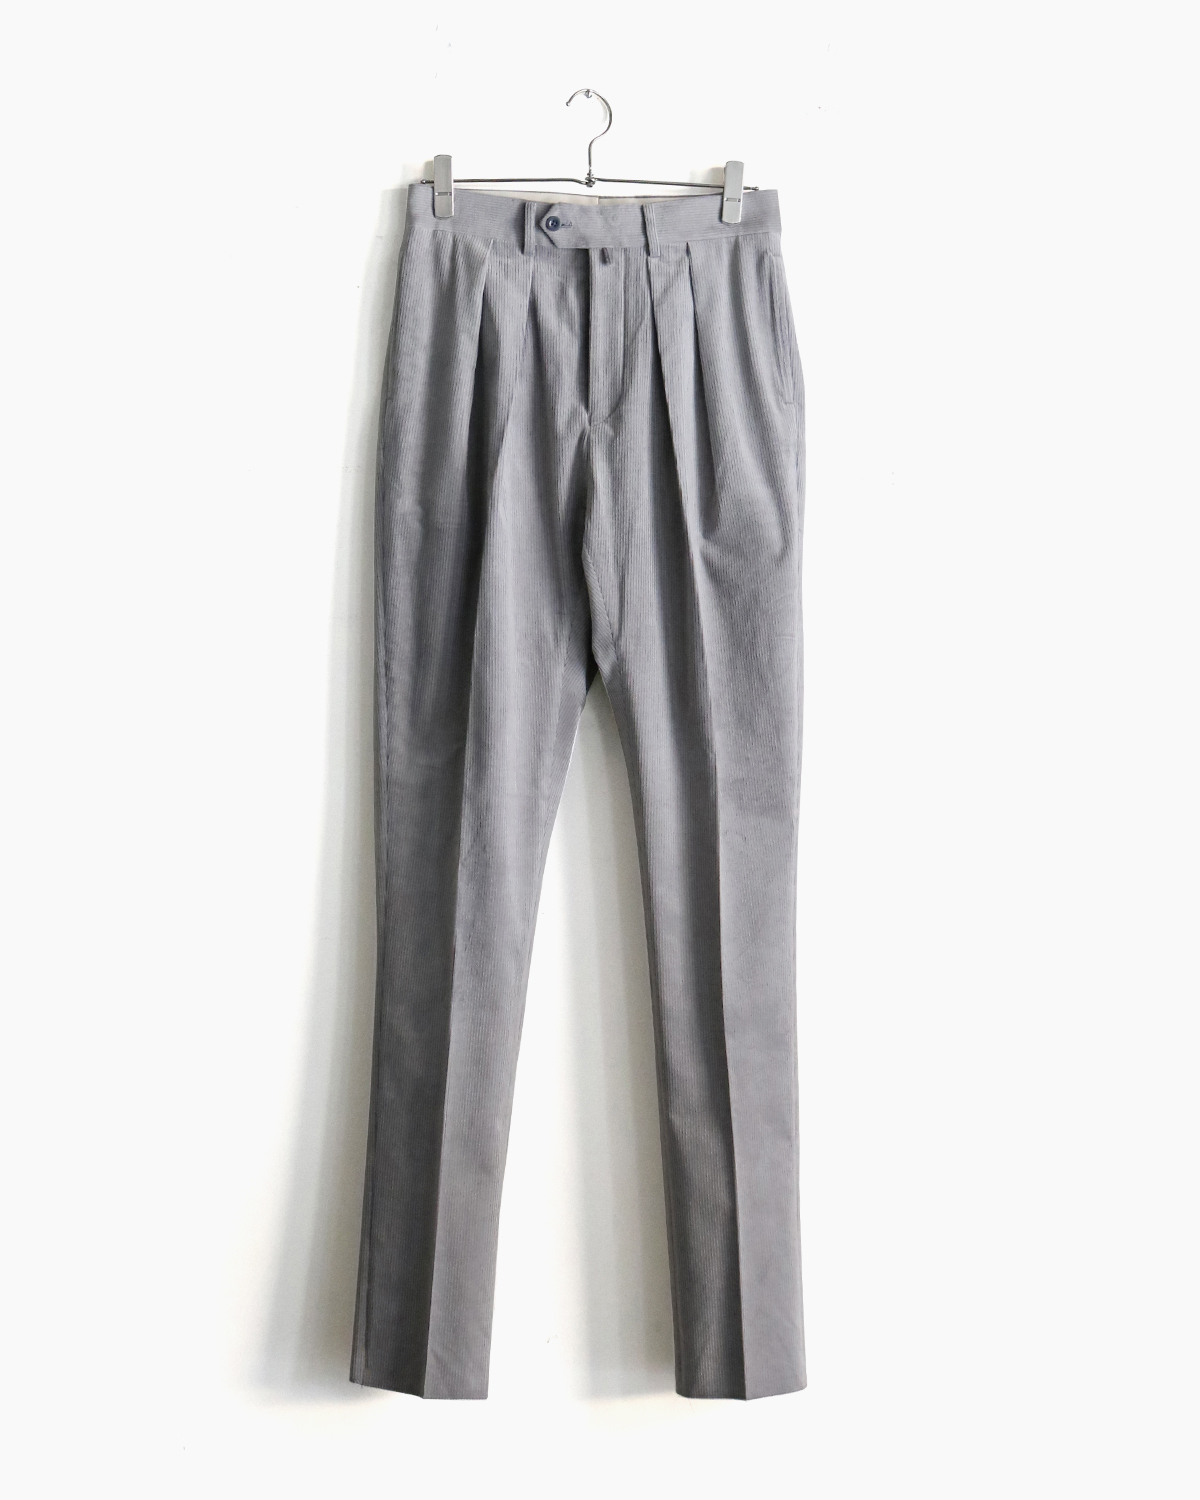 FRENCH CORDUROY|TAPERED - Gray|NEAT